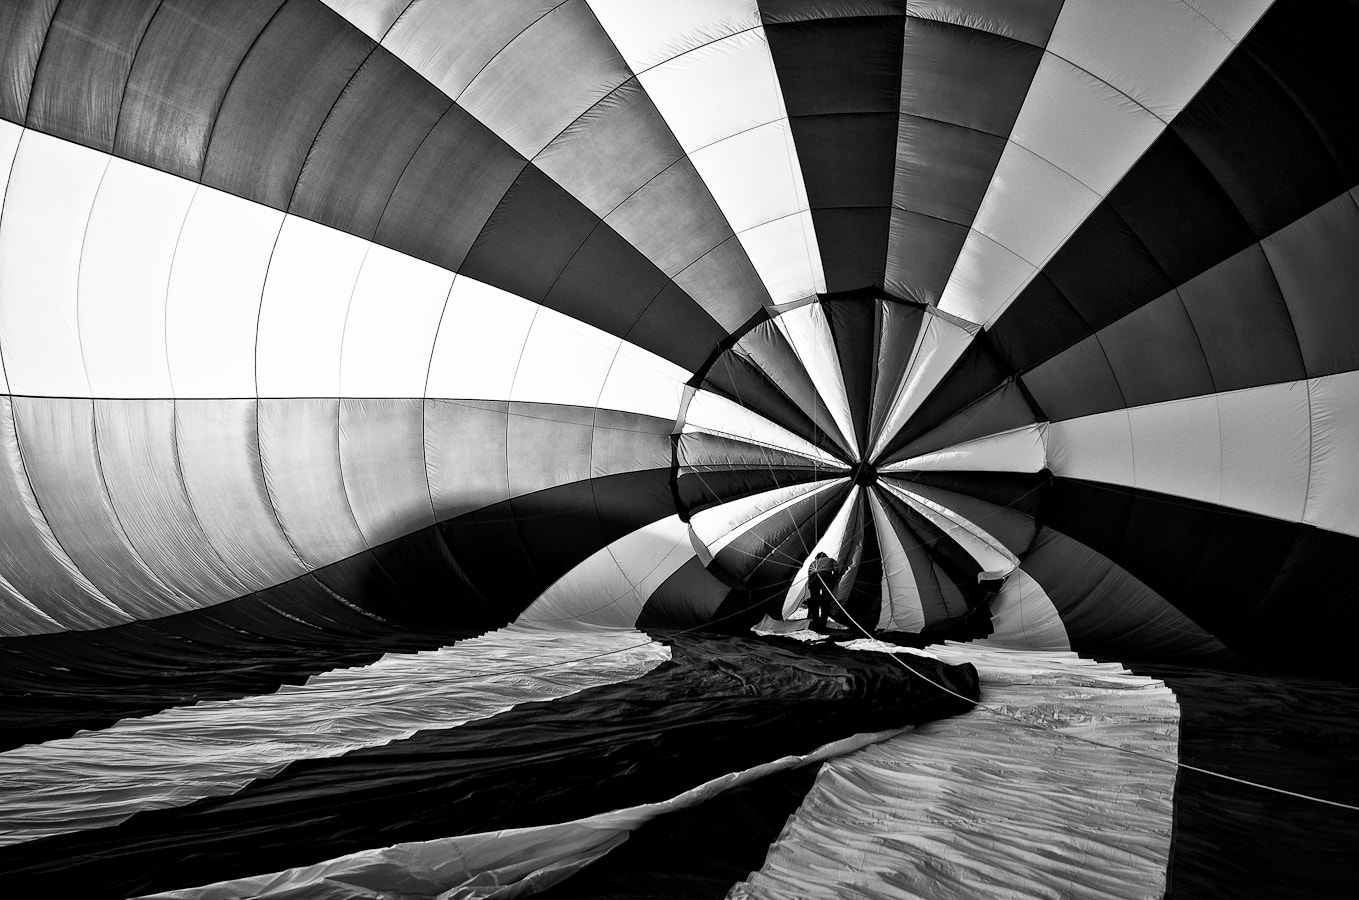 Photograph Inside the balloon by Mat Hieu on 500px